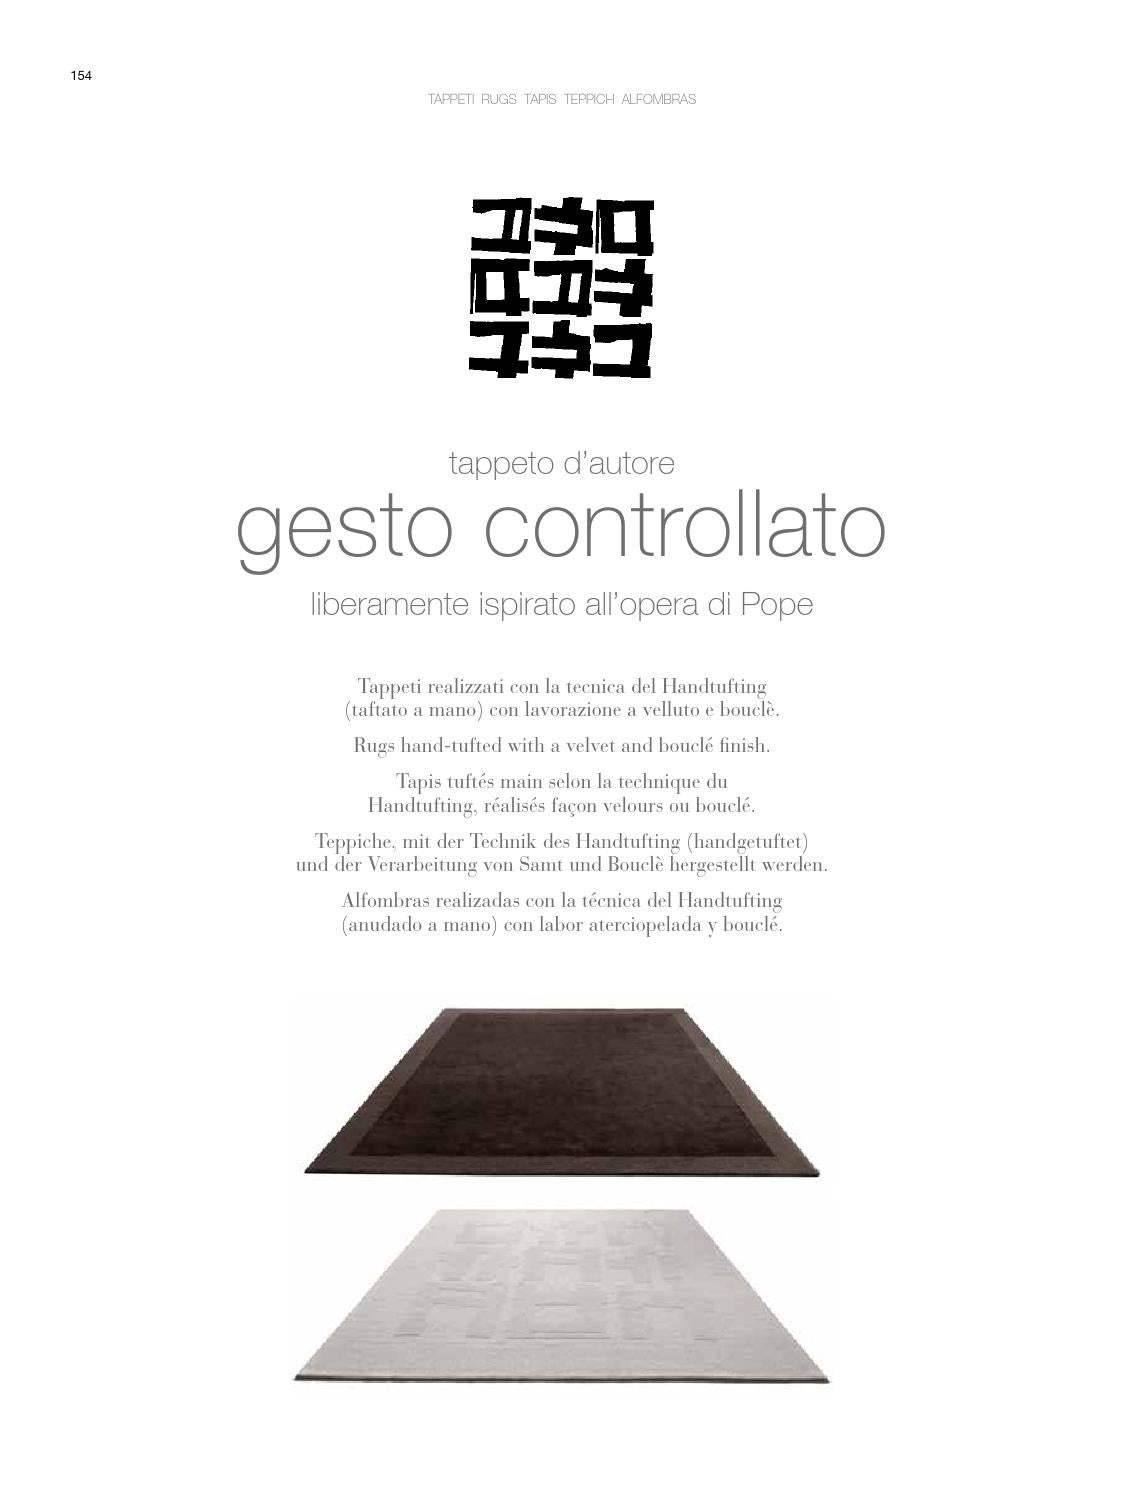 Handtuft Teppiche Catalogo Beds Accessories Rugs By Gruppo Euromobil Issuu